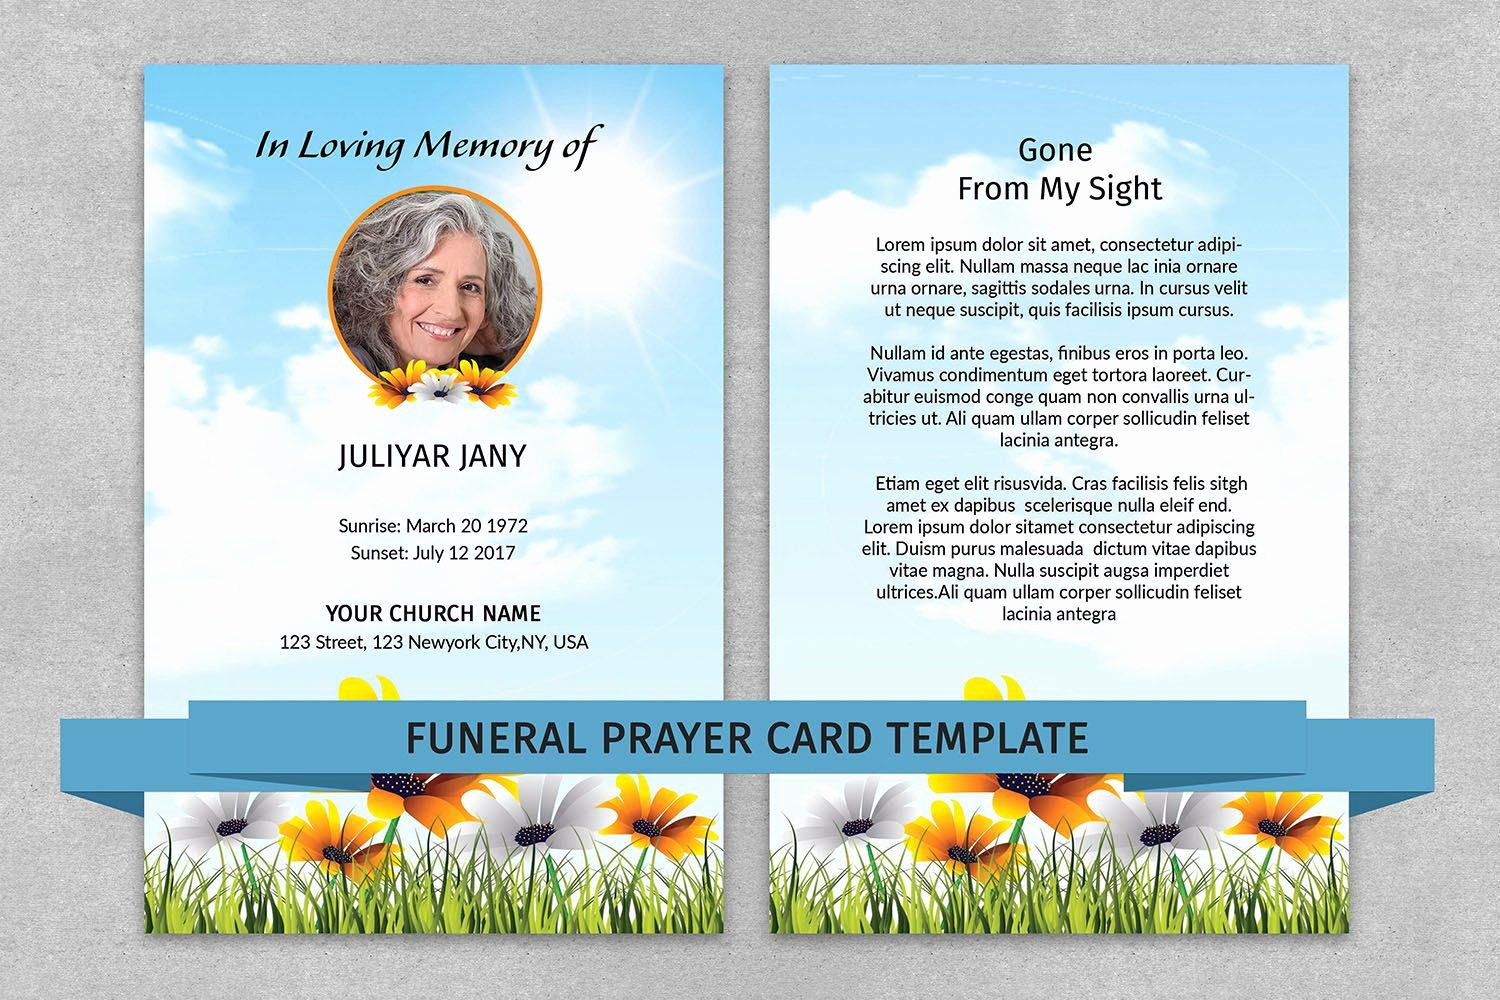 Funeral Prayer Cards Templates Beautiful Memorial Prayer Card Template